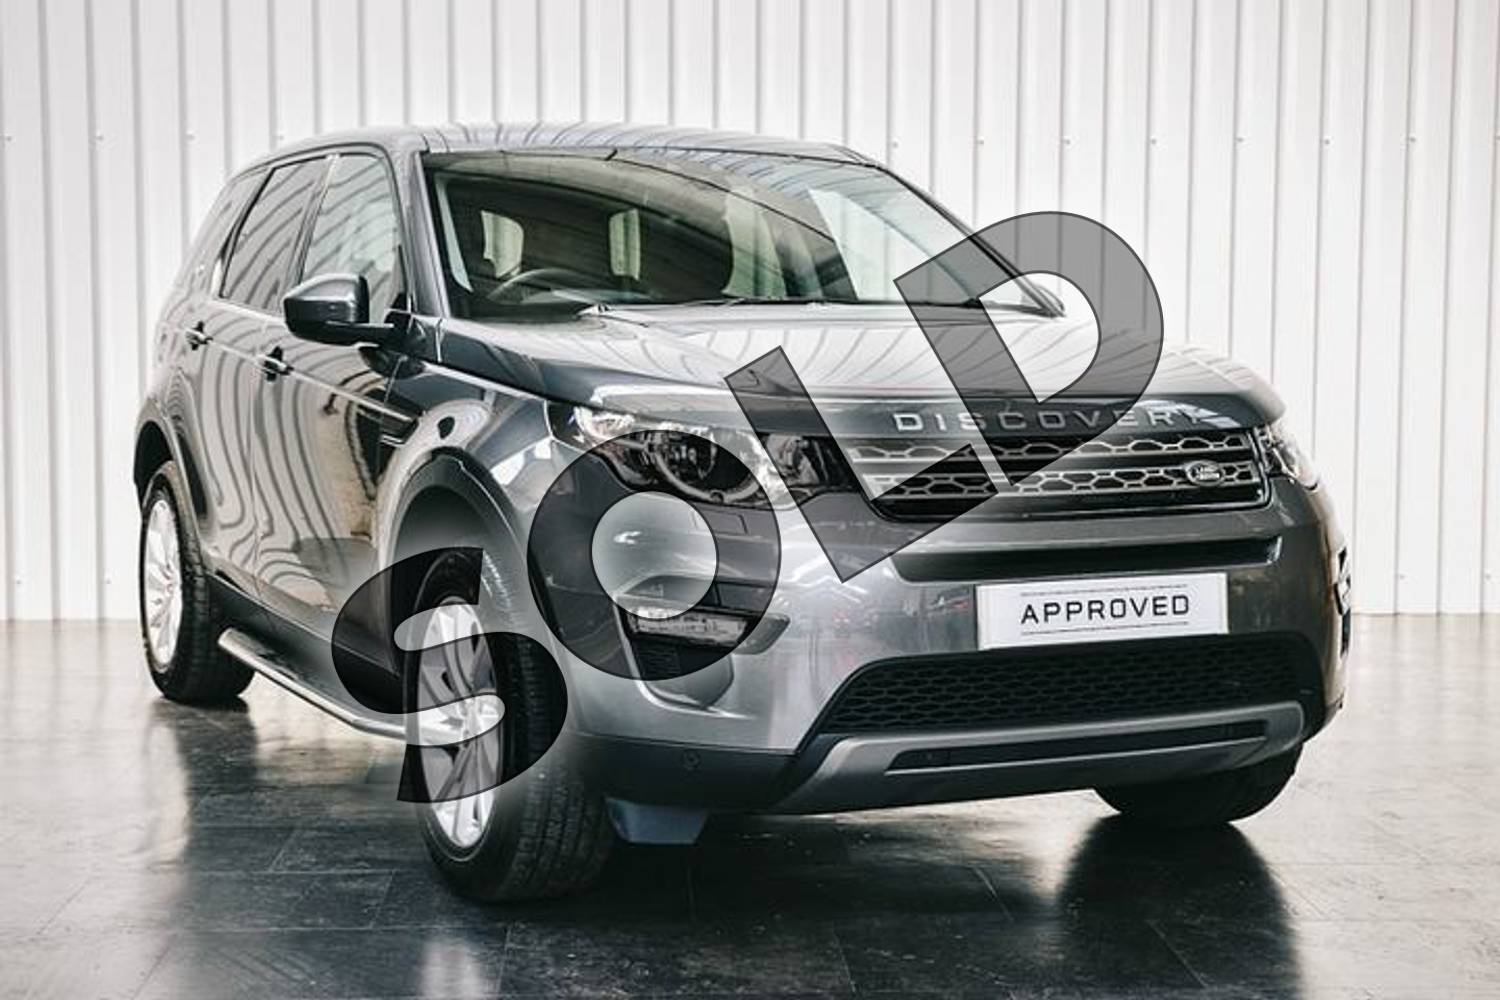 2019 Land Rover Discovery Sport Diesel SW Diesel SW 2.0 TD4 180 SE Tech 5dr Auto in Corris Grey at Listers Land Rover Solihull